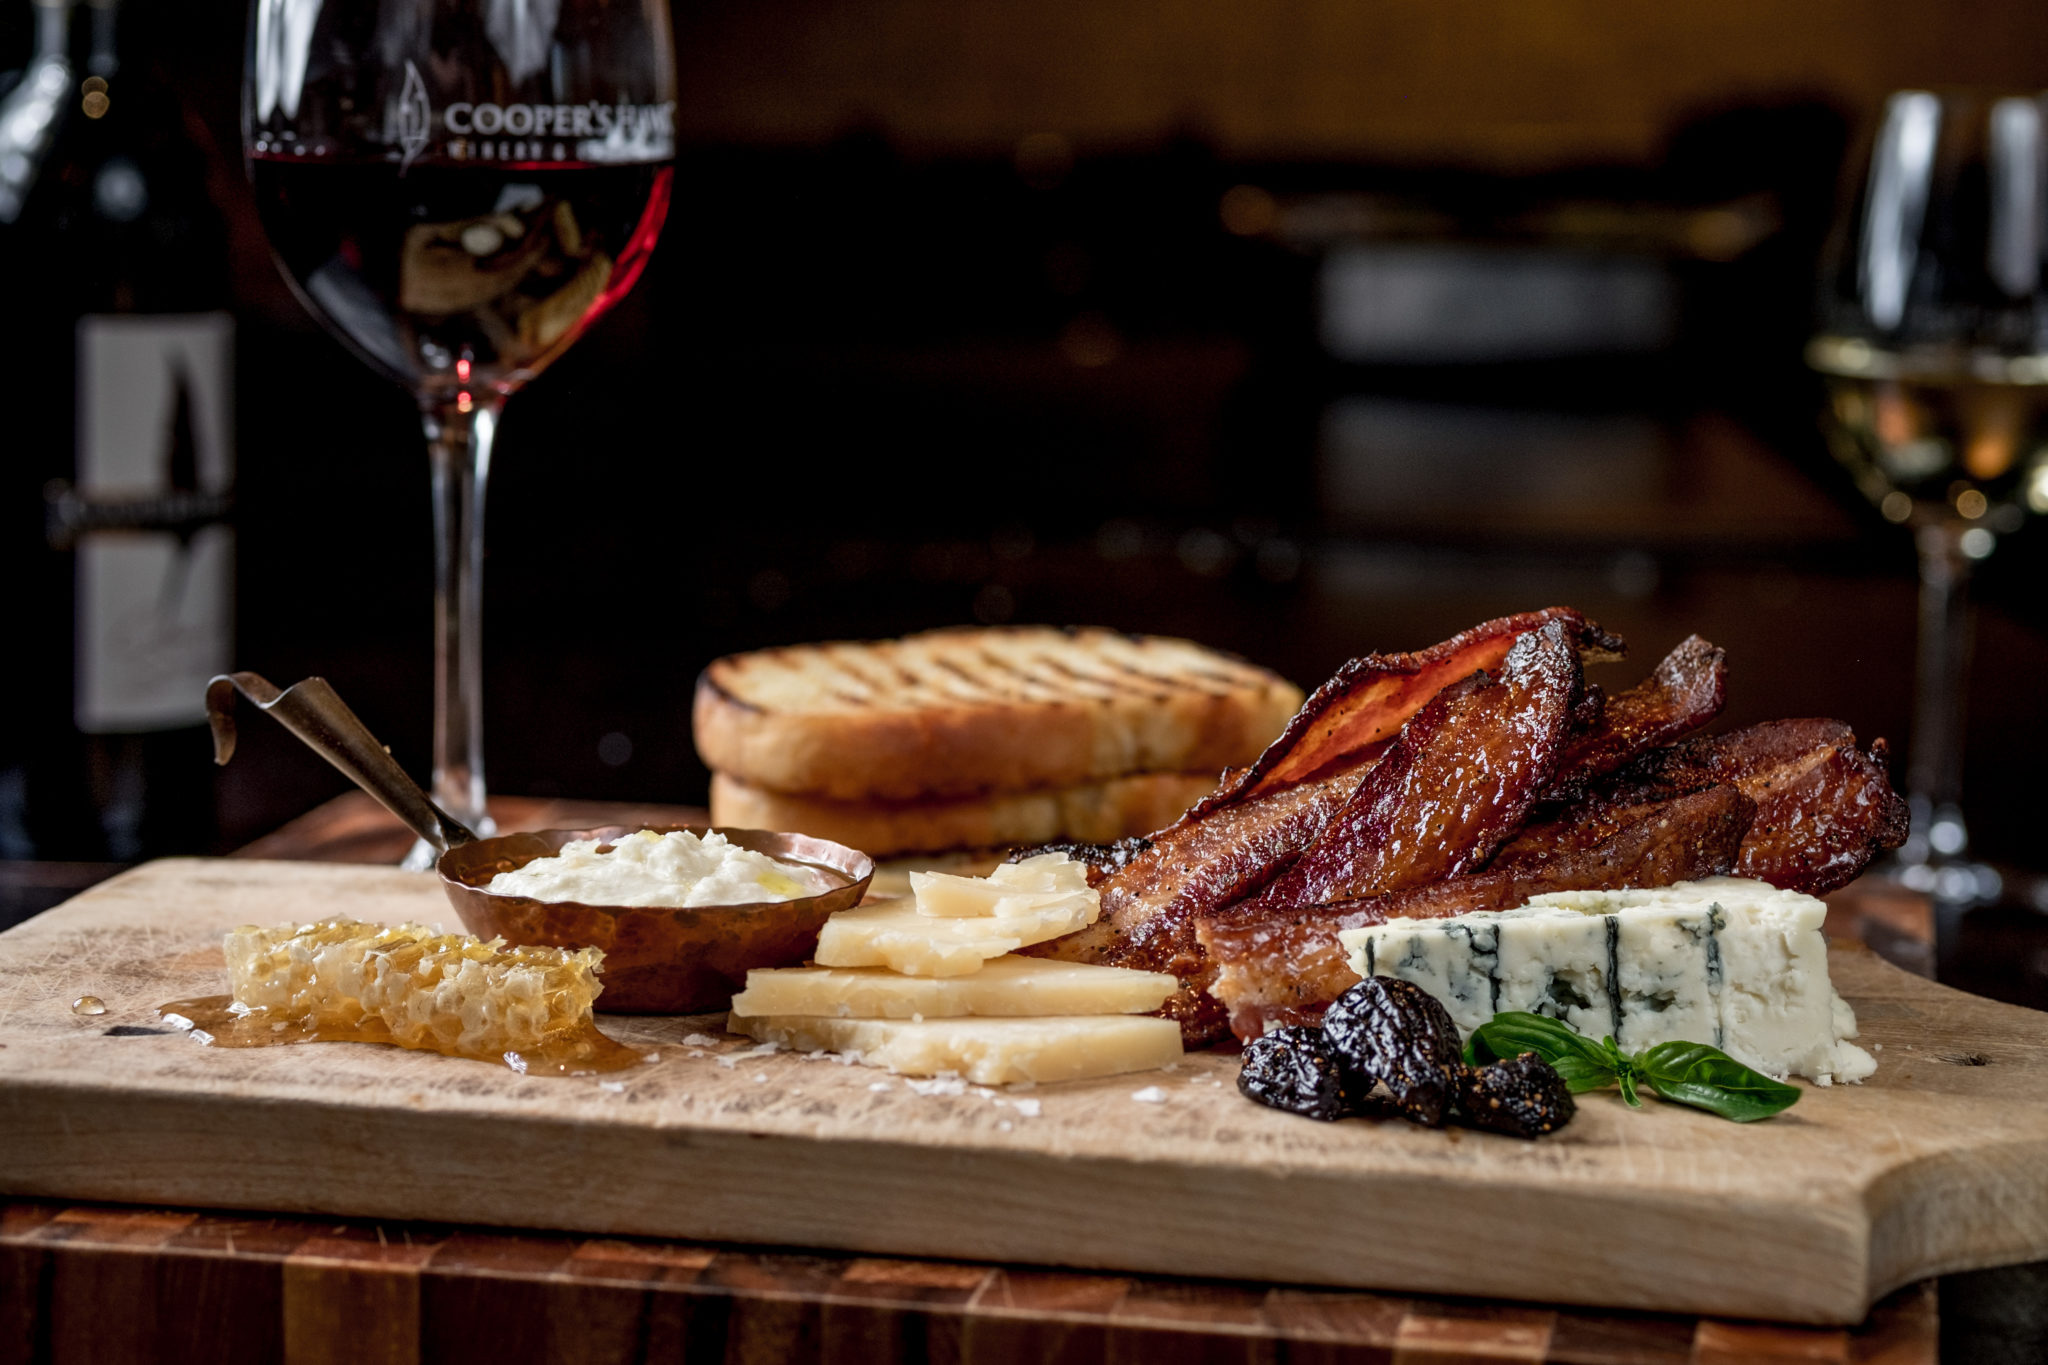 Cooper's Hawk Candied Bacon Artisan Cheeses